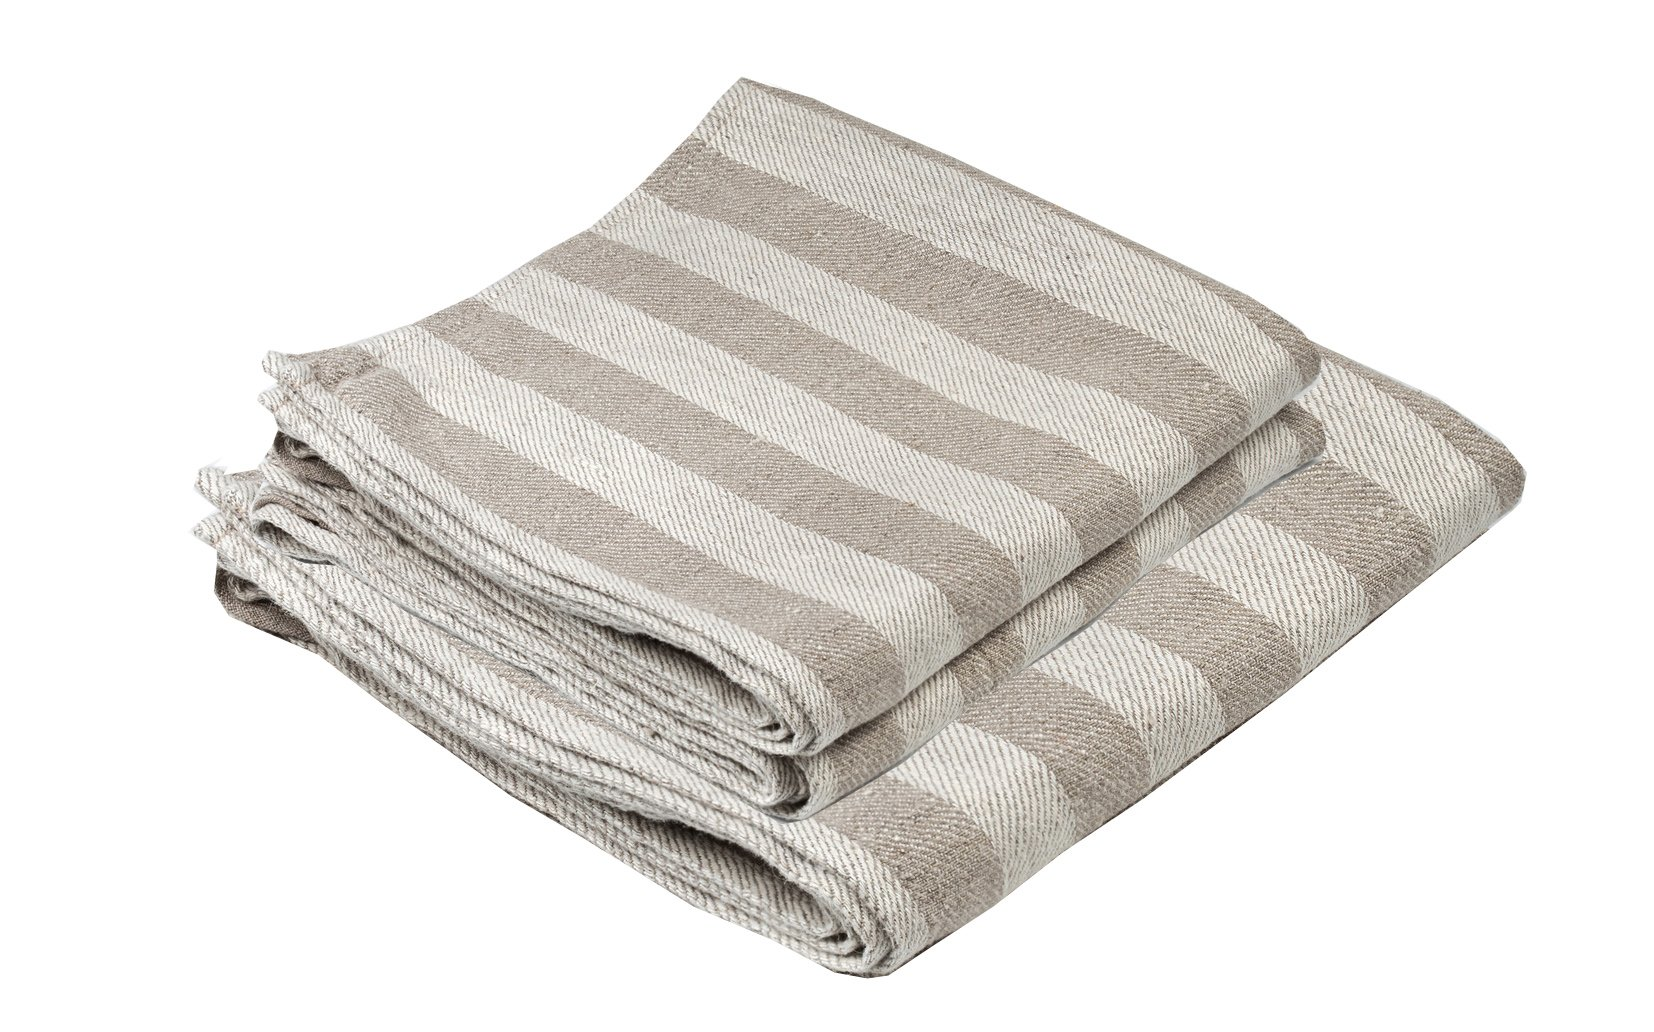 BLESS LINEN Jacquard Striped Pure Linen Towel Set of 3, Grey/White - Includes 1 Bath Towel and 2 Hand Towels